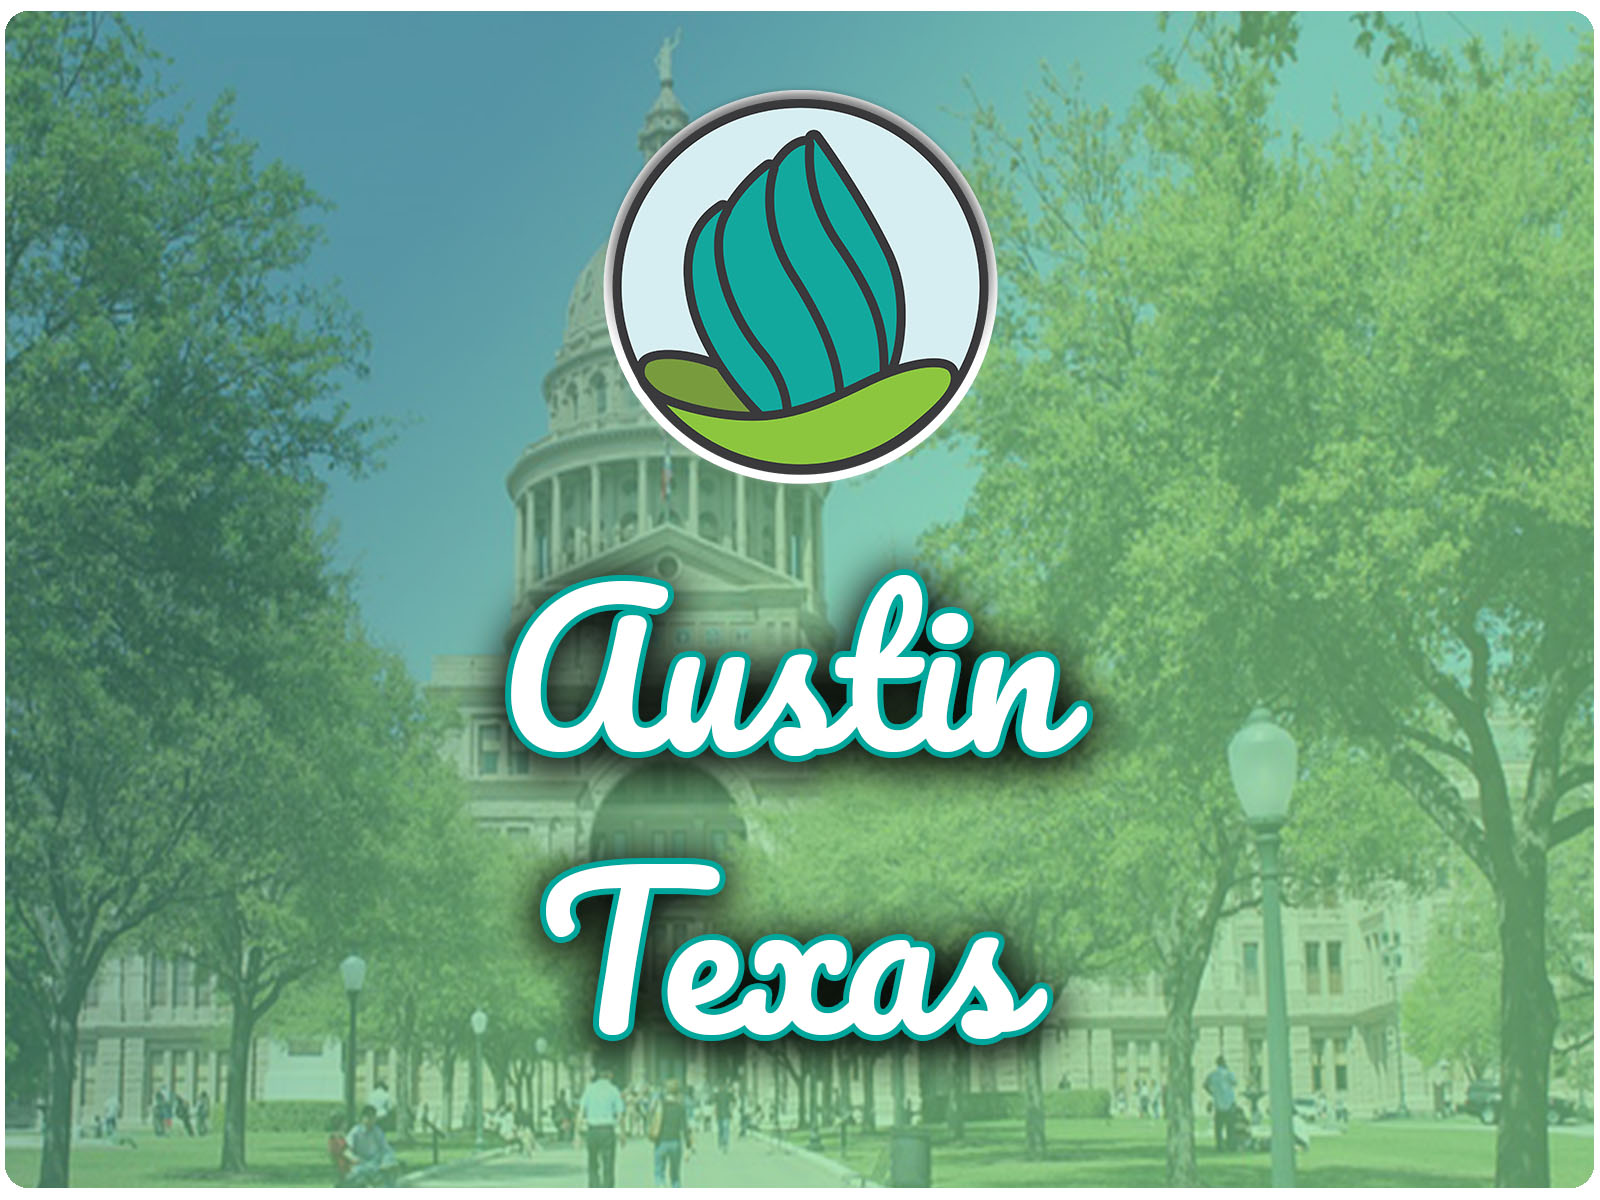 Image of the Texas Capitol builoding and a blue-green gradient overlay, and the words 'Austin, Texas' in cursive and NDC logo on top